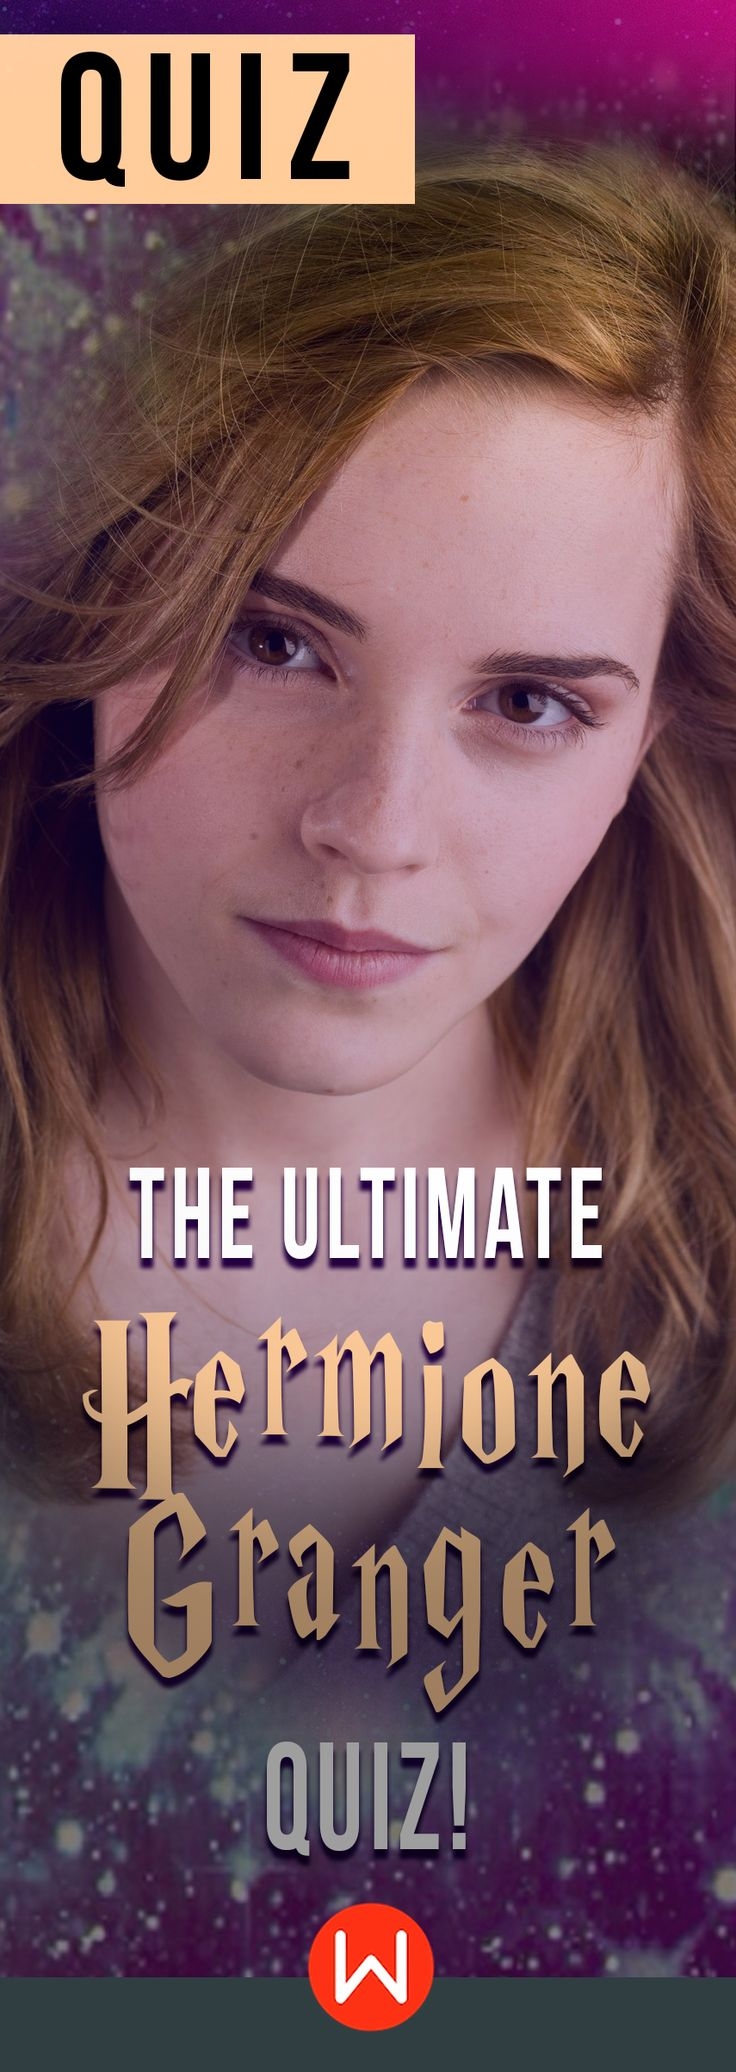 Hermione Granger Trivia quiz. Many people like Hermione Granger, but do you really know her? Test how much you really know Hermione on this HP trivia test. Harry Potter Quiz, JK Rowling, Potterhead Challenge. Hermoine Granger quiz. Hermione Quiz.